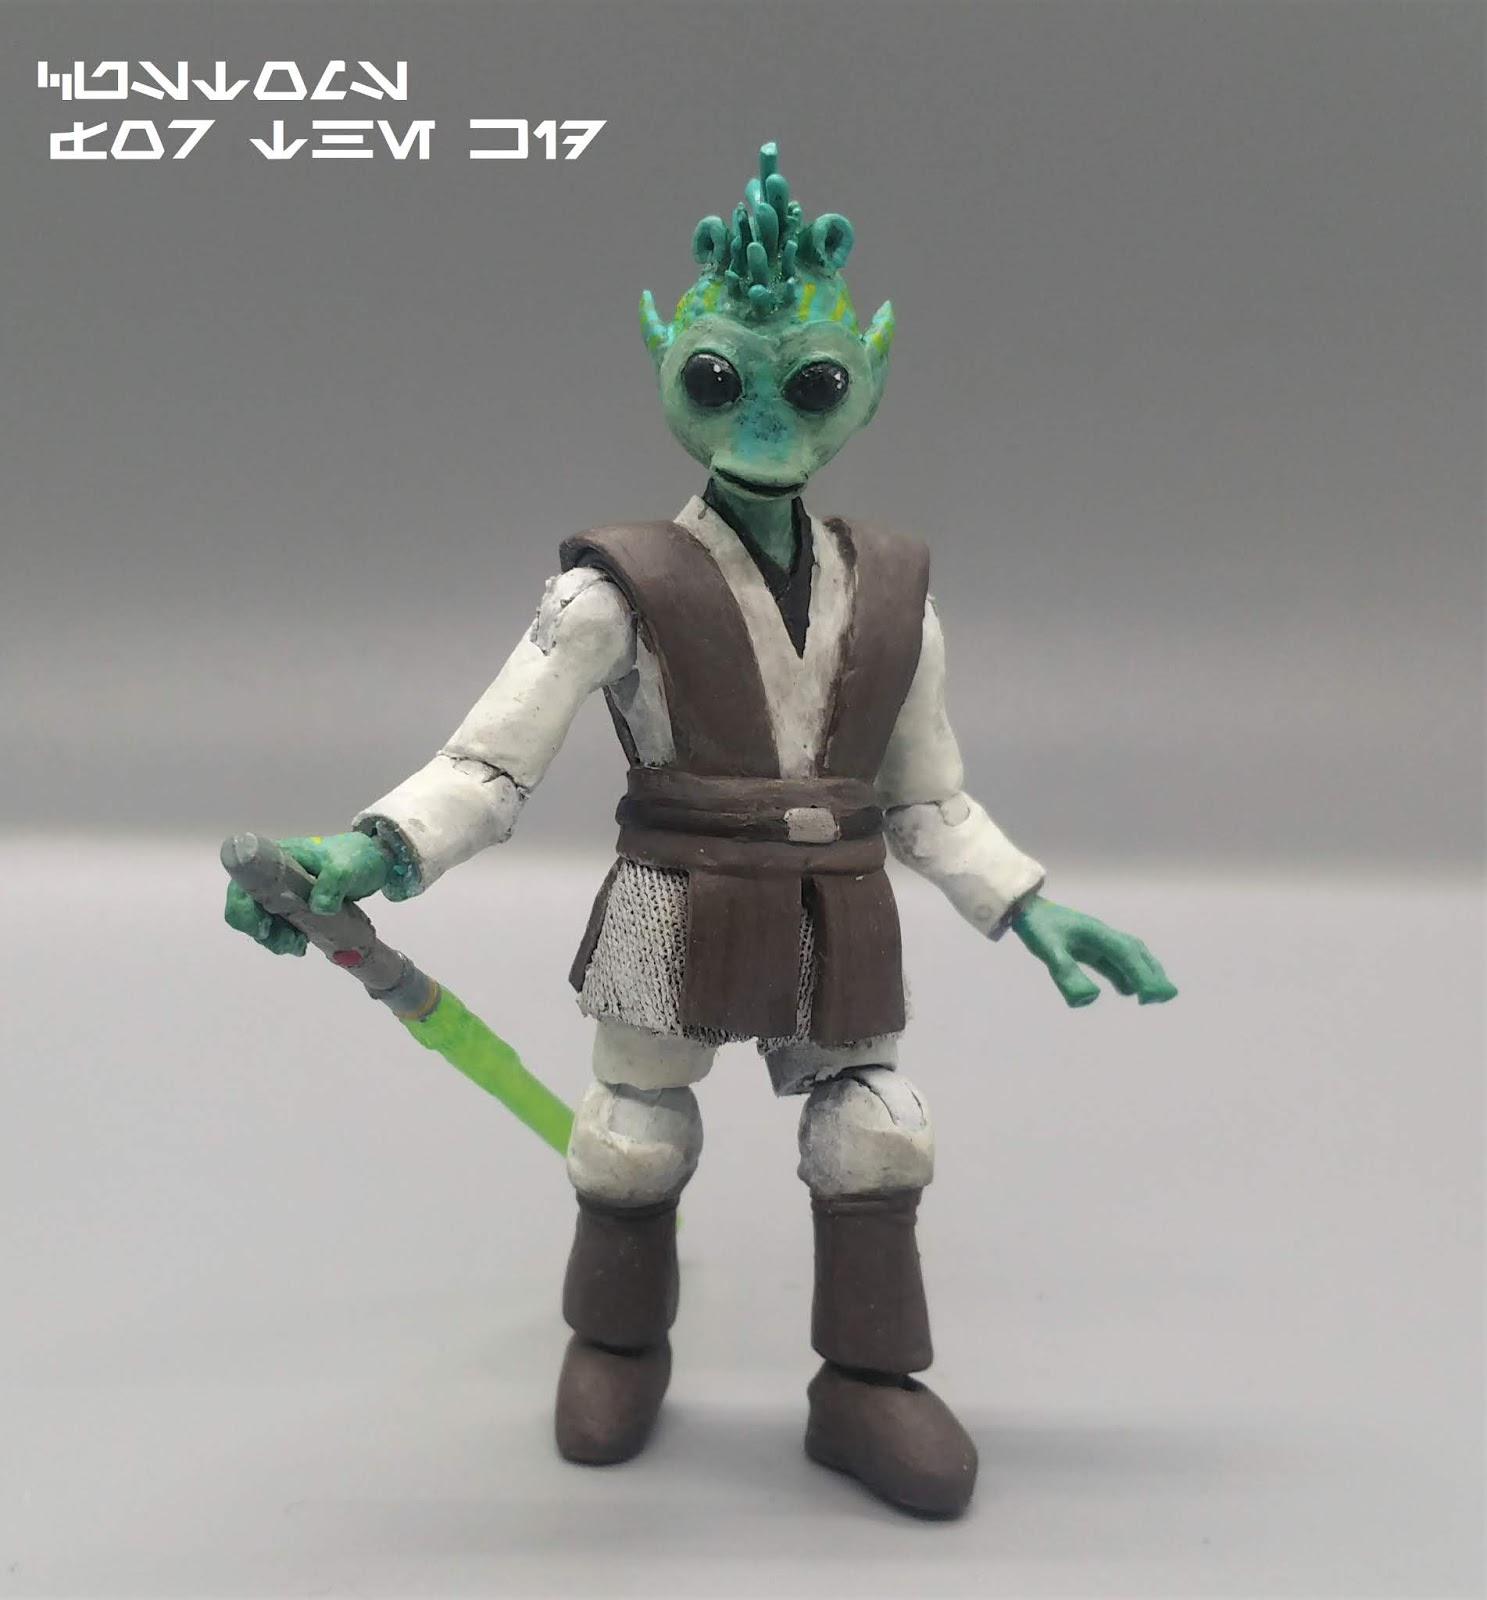 Star Wars Customs For The Kid Jedi Younglings Created By Customs For The Kid Part Two Find this pin and more on star wars: star wars customs for the kid jedi